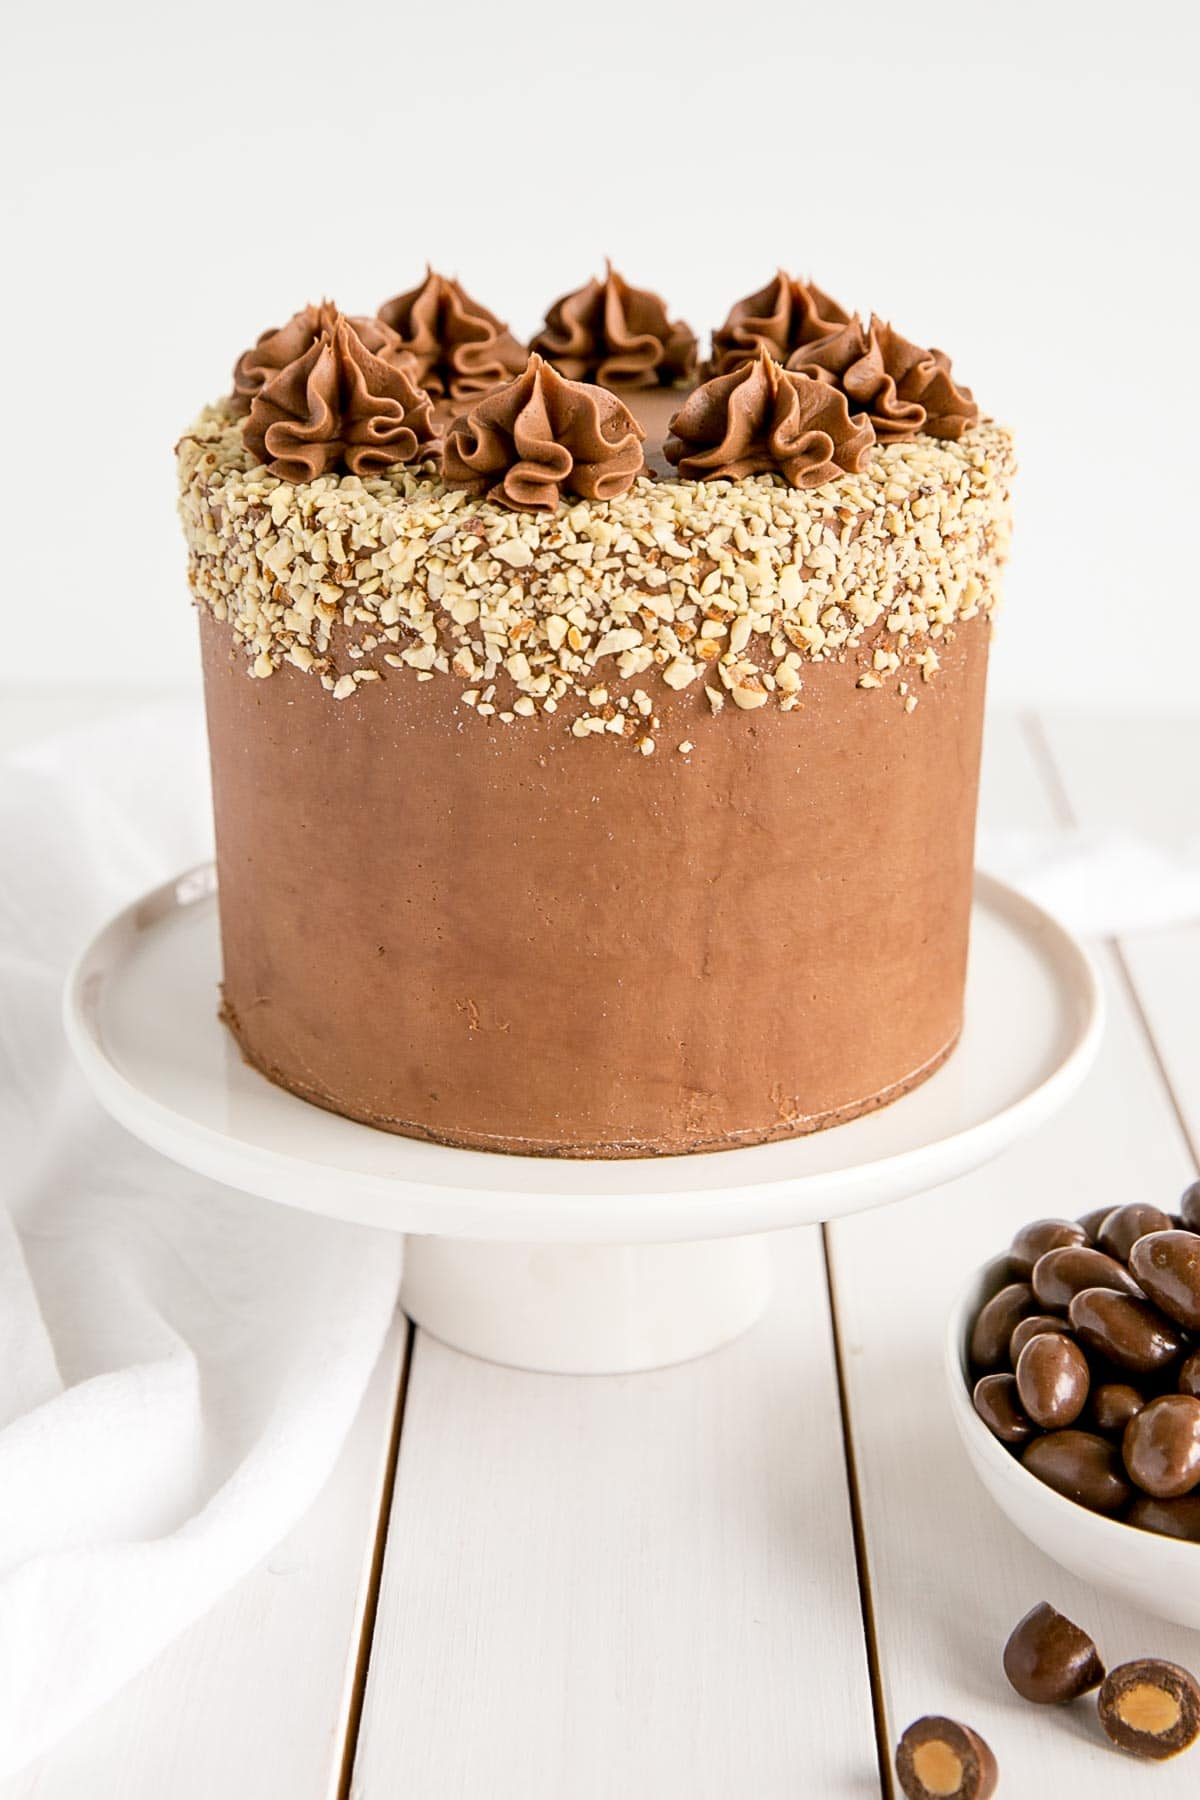 Almond cake layers with a milk chocolate ganache.